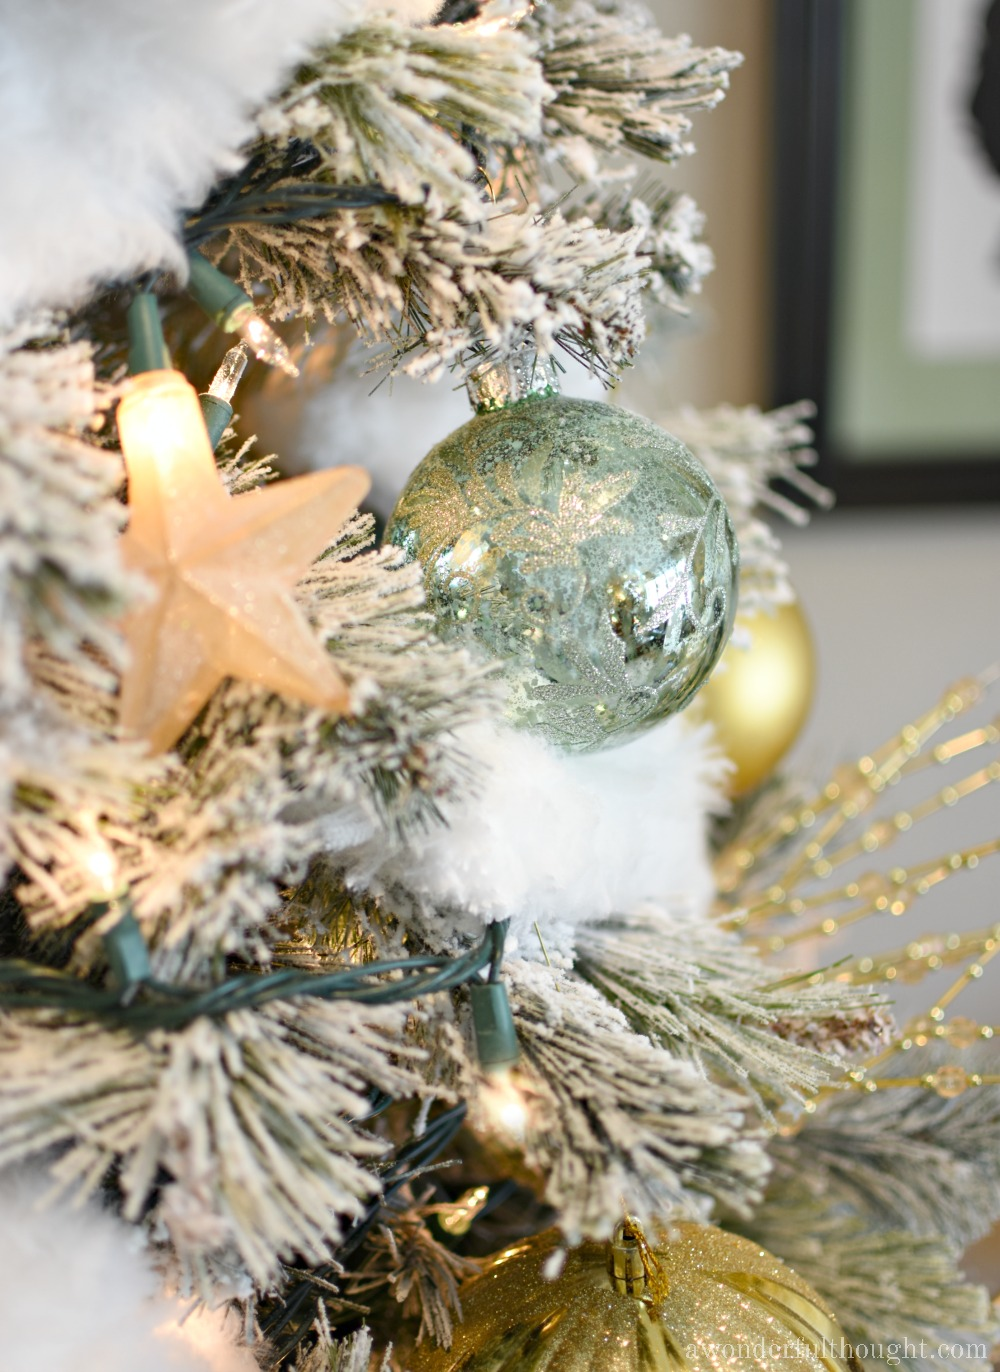 Silver, Gold and Light Green Snowy Christmas Tree #christmastree #christmastreeideas #flockedchristmastree #awonderfulthought